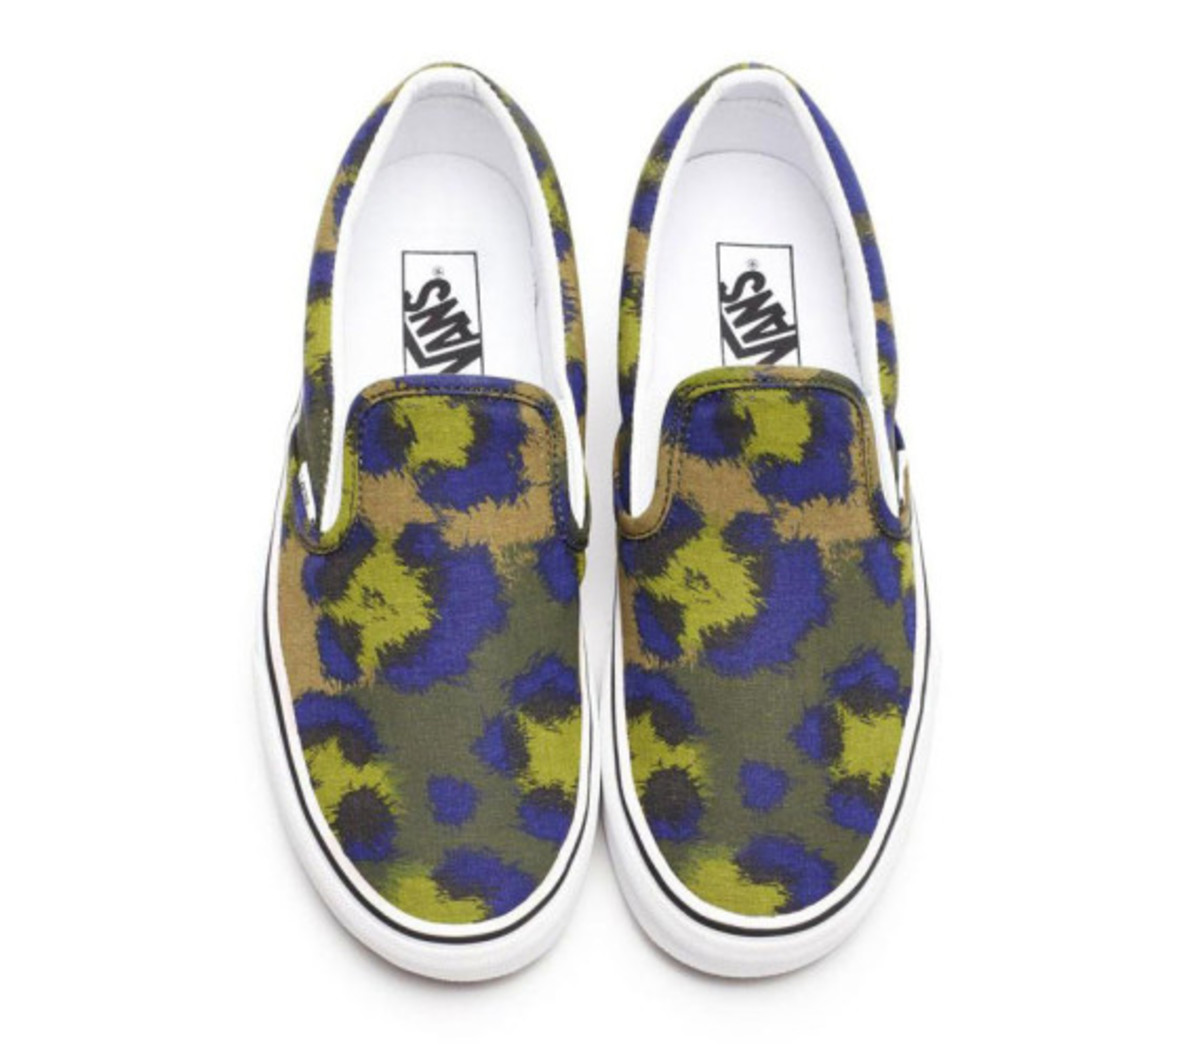 kenzo-vans-spring-summer-2013-capsule-collection-04